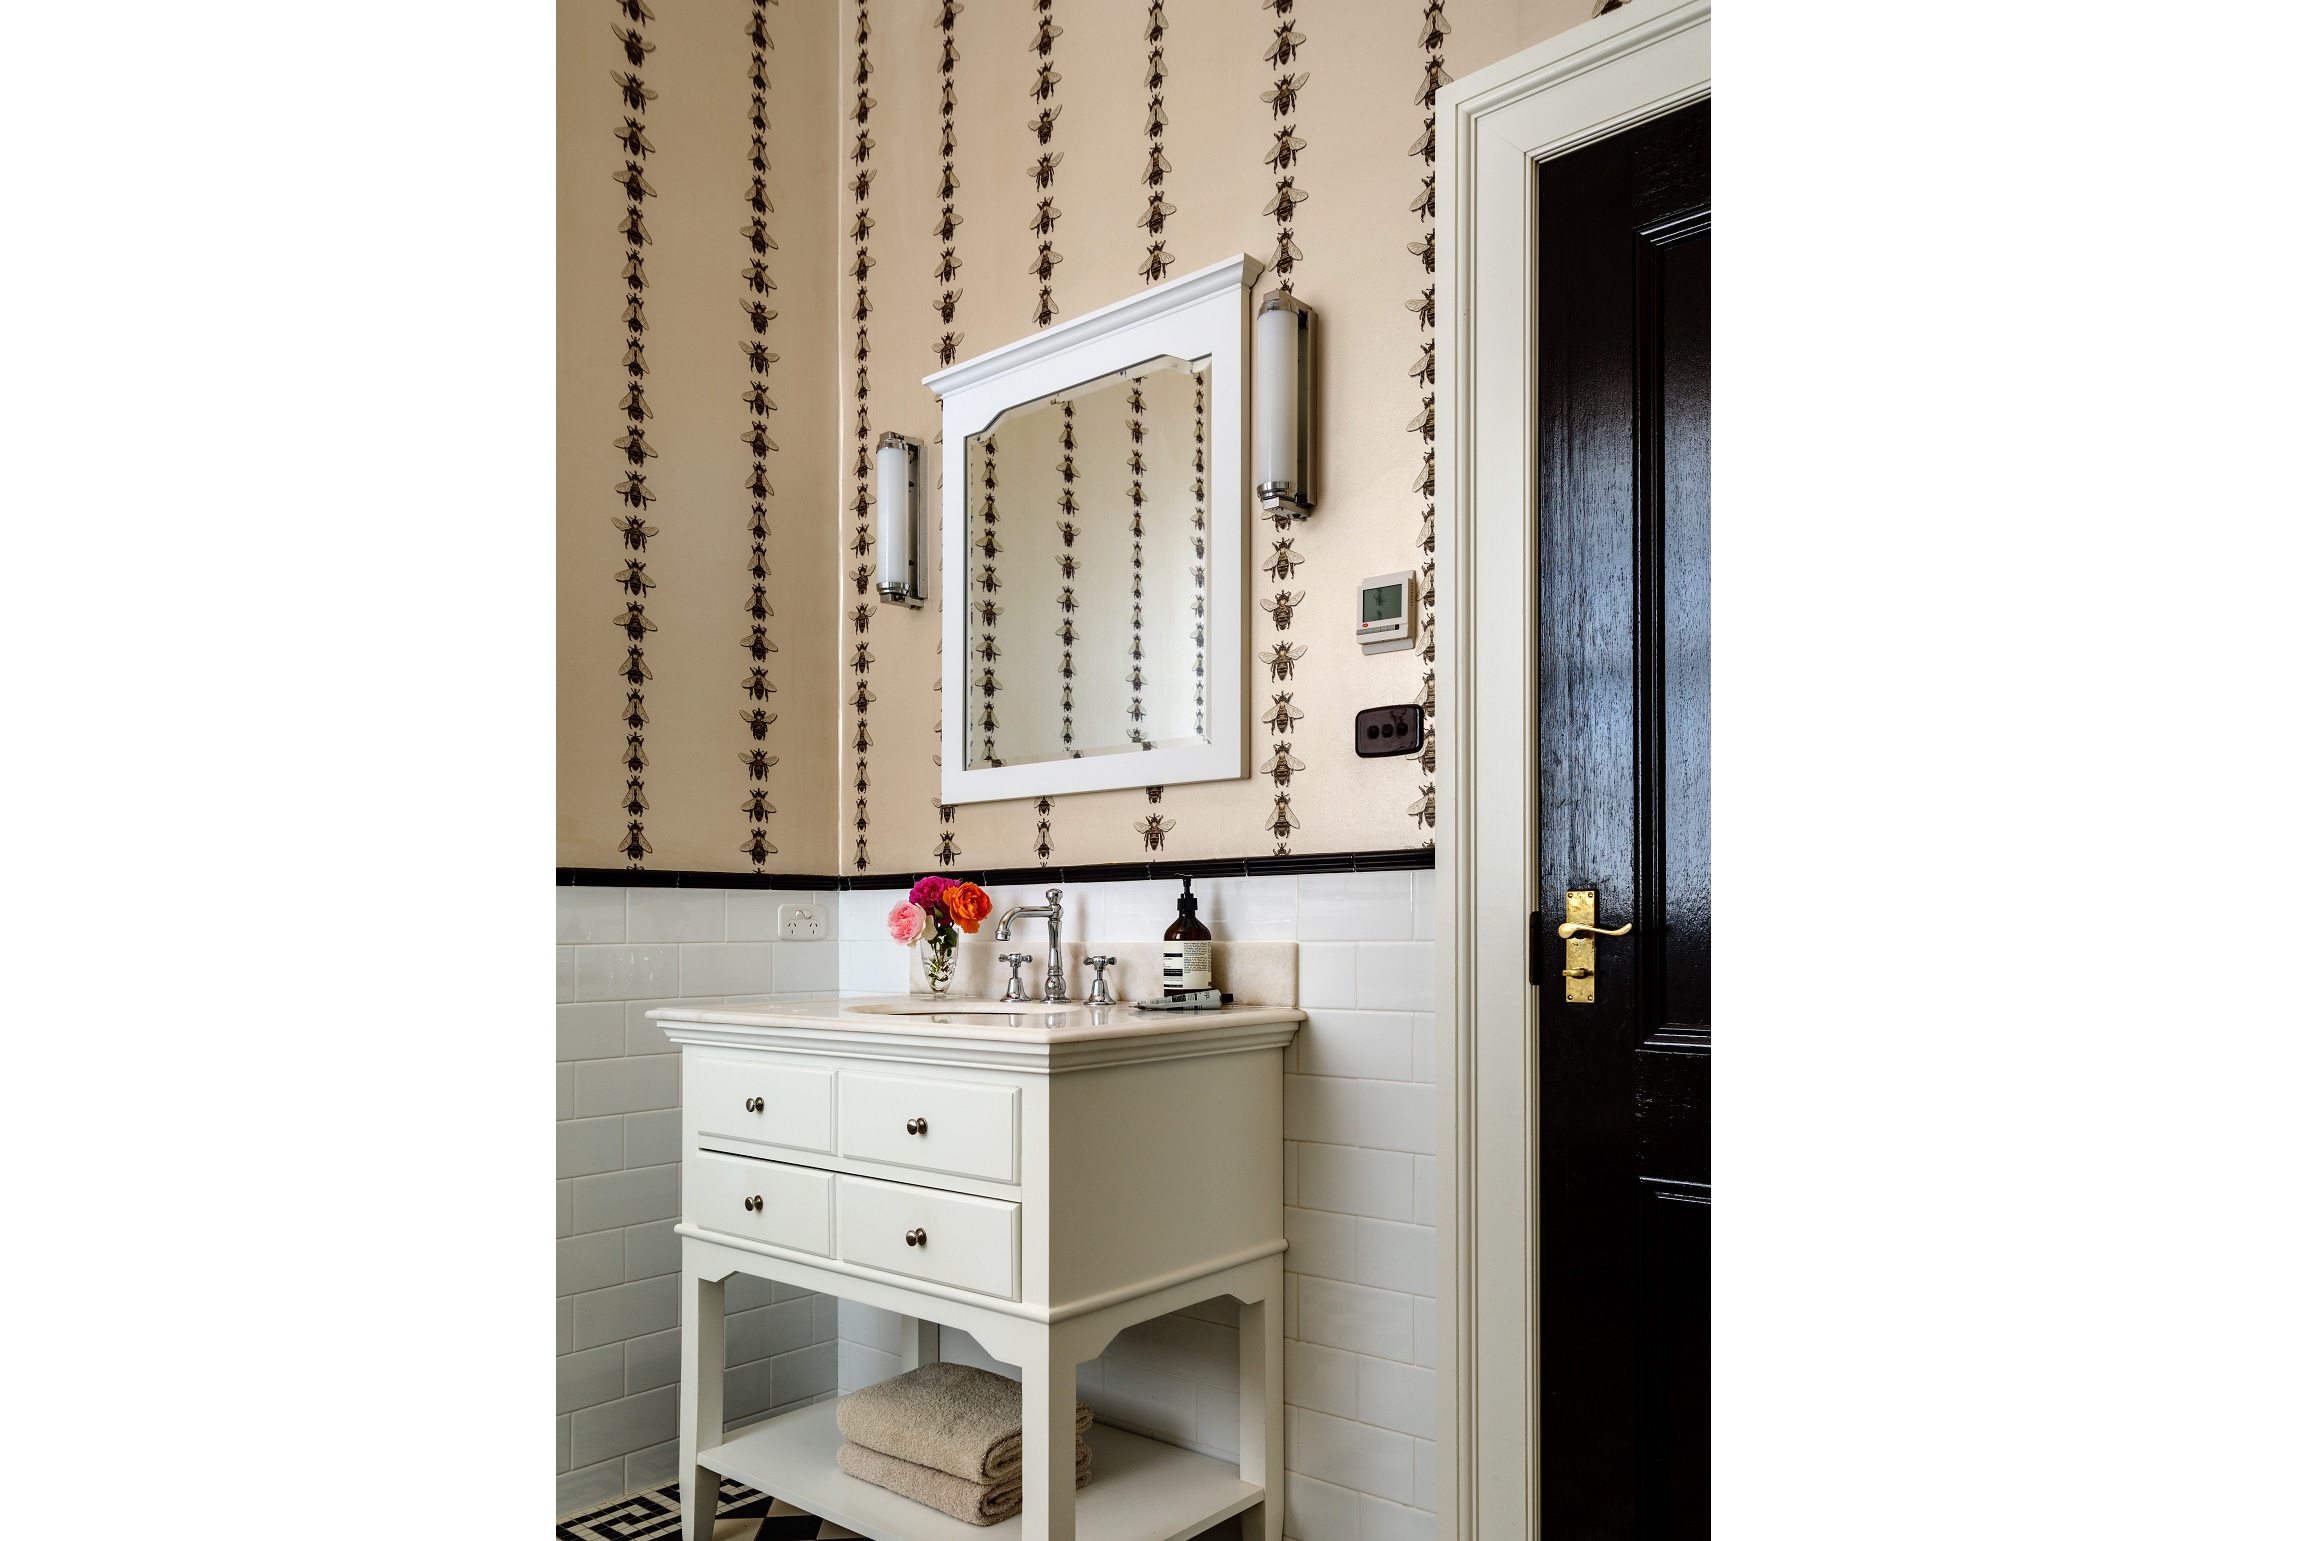 Bees-Wallpaper-Country-Farmhouse-Bathroom-Australia-Michael-Bell-Architects